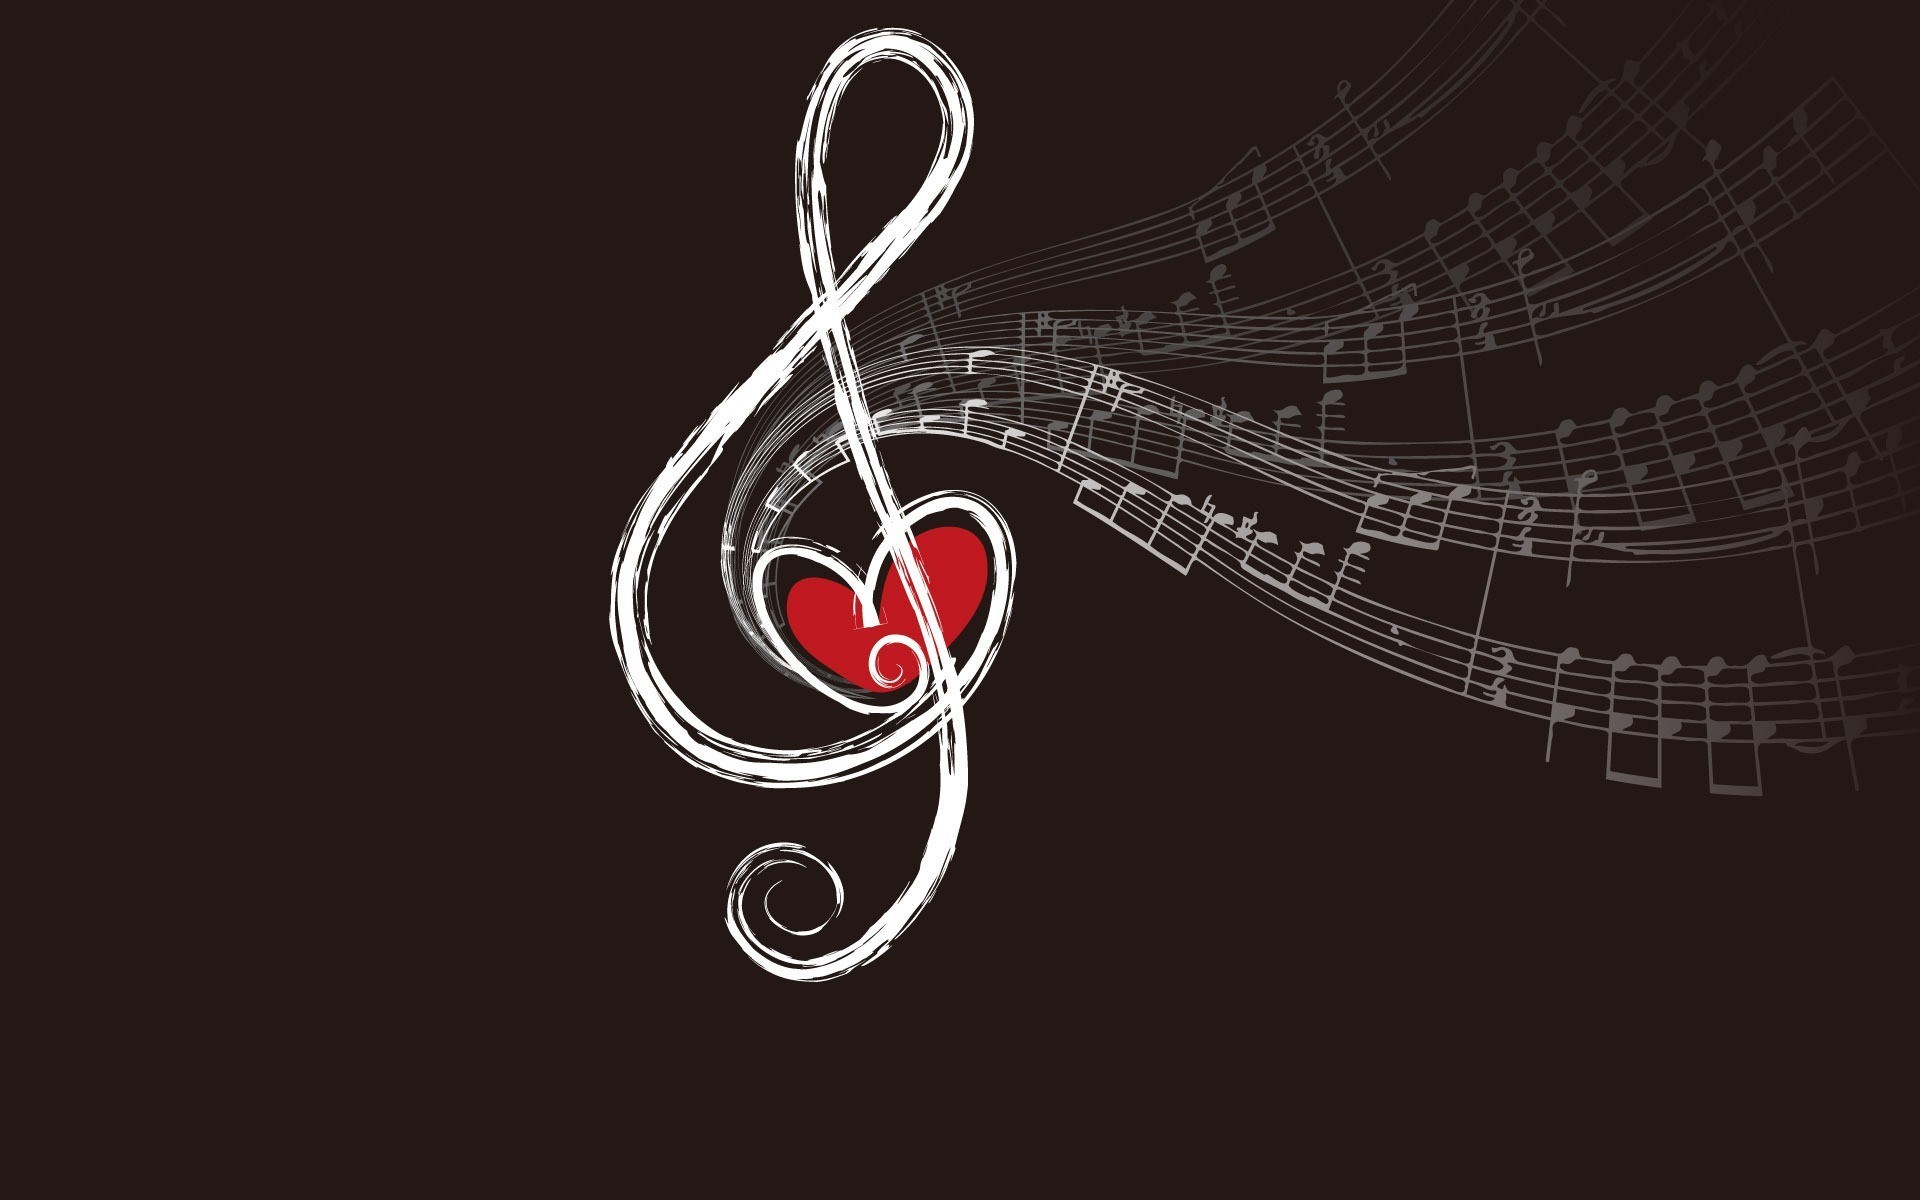 [67+] Music Note Backgrounds on WallpaperSafari